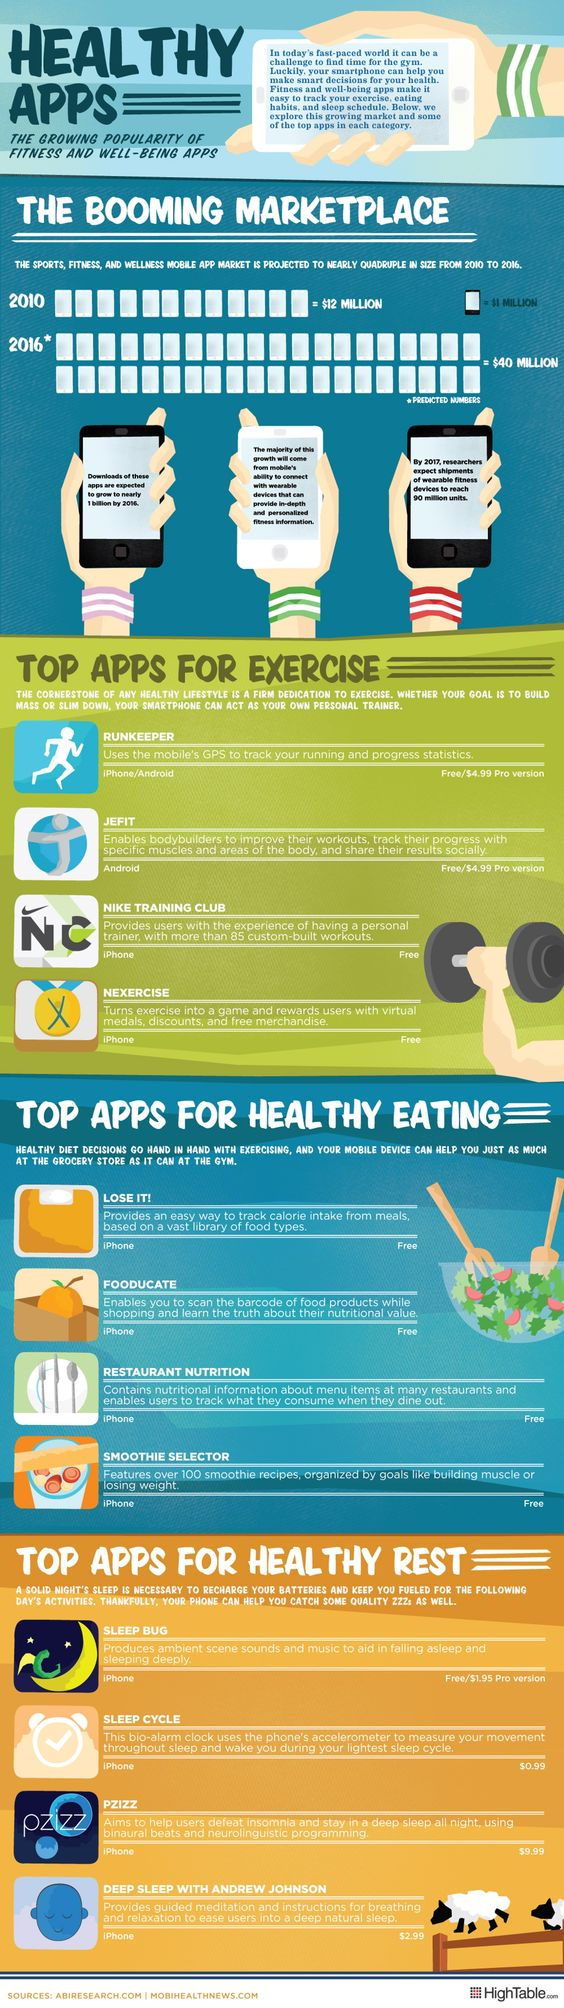 Top Health and Fitness Apps to Improve Your Workout and